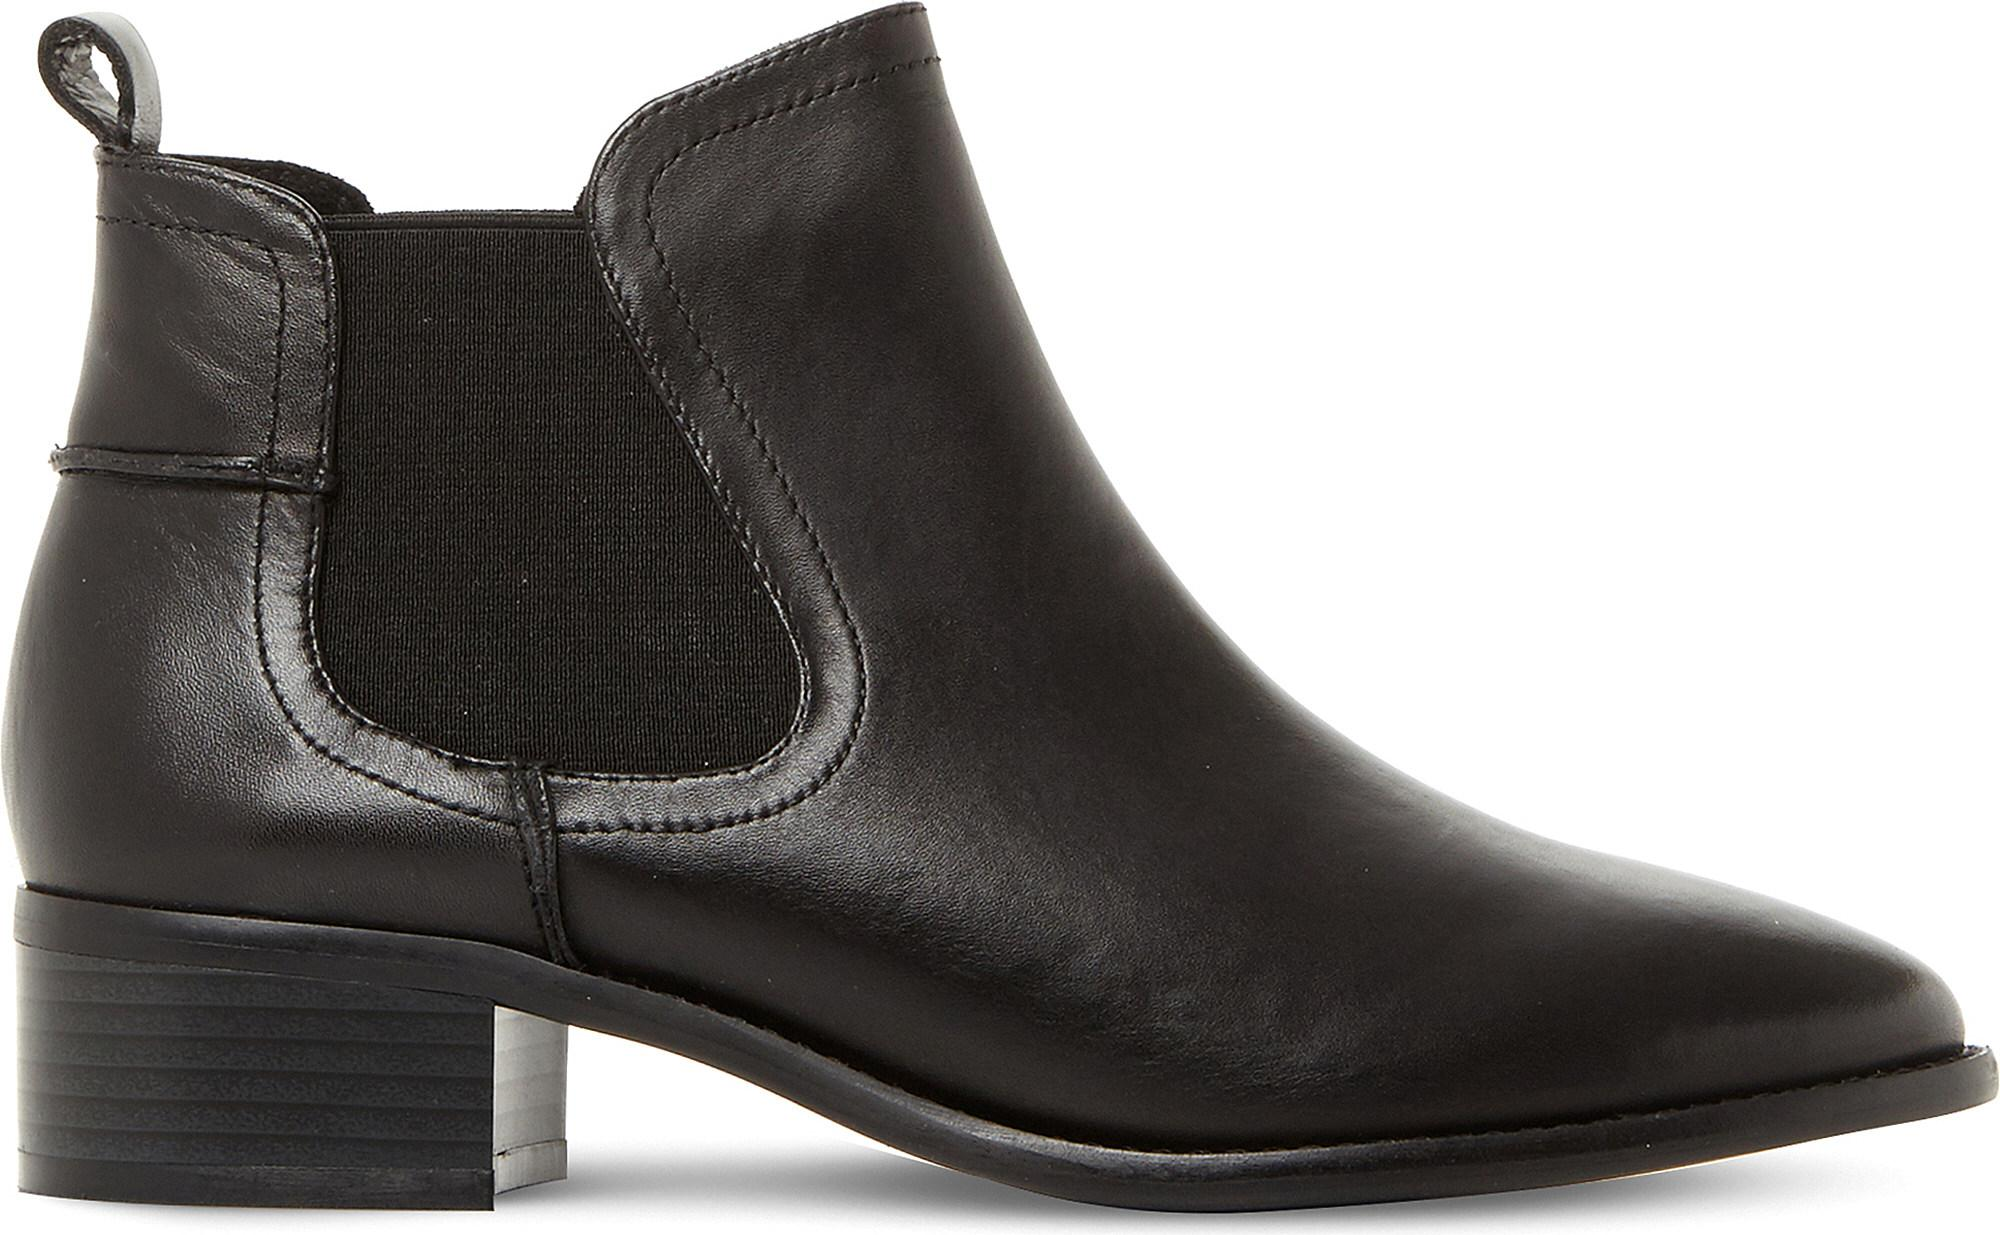 2d38853adbf Lyst - Steve Madden Dicey Sm Leather Chelsea Boots in Black